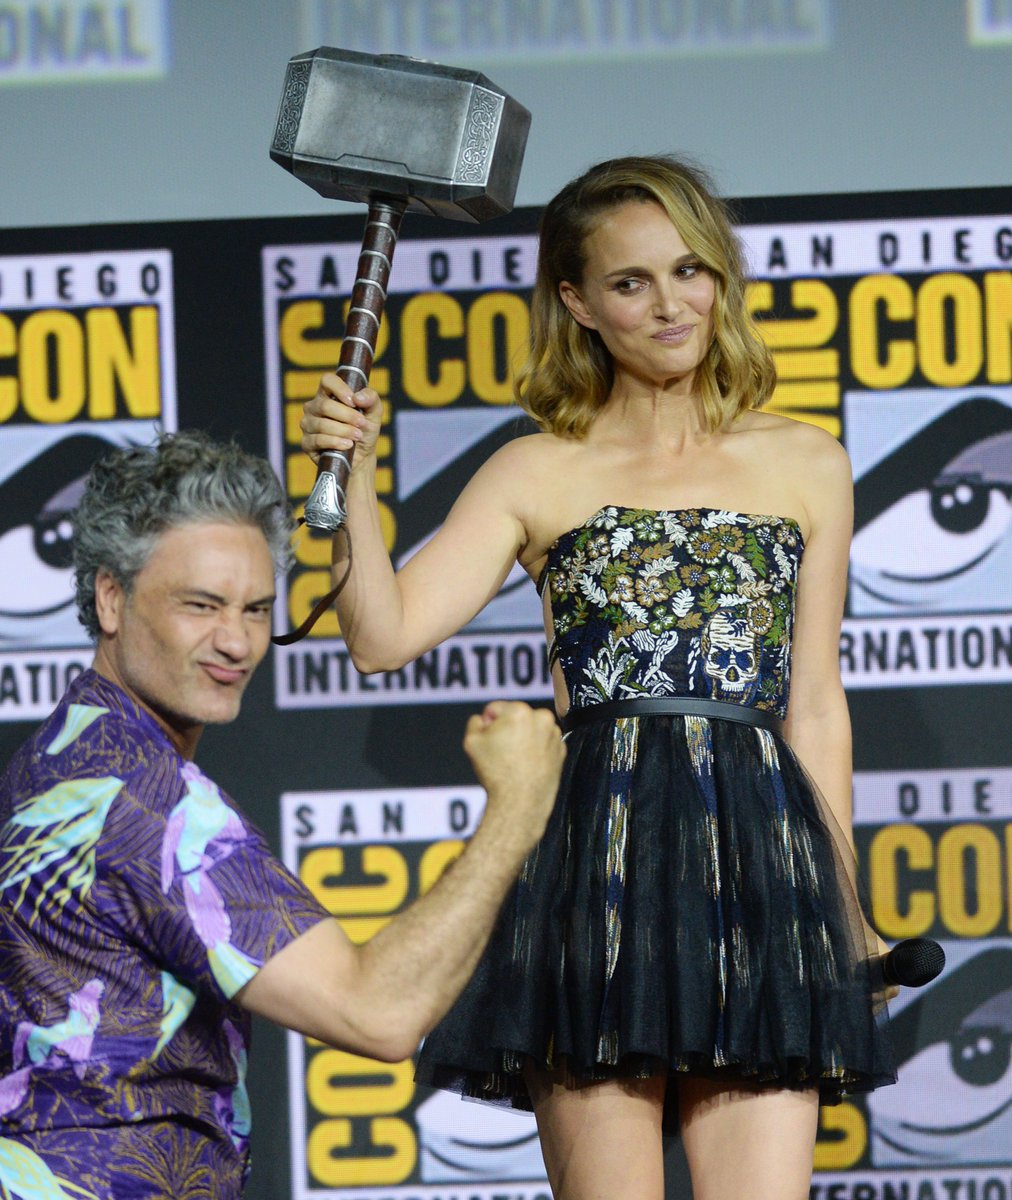 """Natalie Portman is returning to the MCU - but not just as Jane Foster. The """"Thor"""" actress revealed that she will be playing female Thor in the upcoming Marvel sequel at   #SDCC https://trib.al/z8pheOS"""